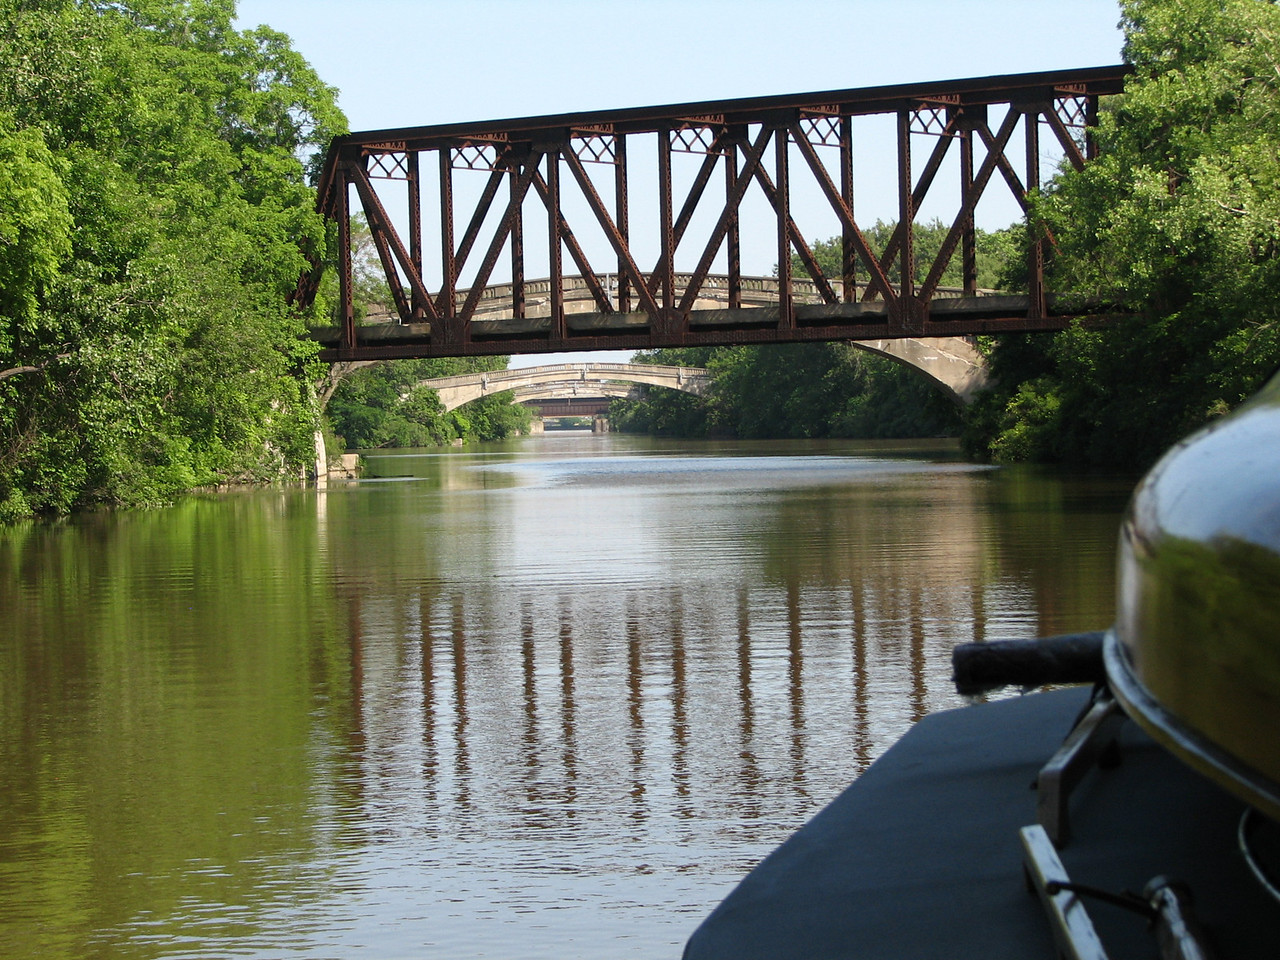 An old railroad bridge and a series of auto bridges where a river intersects the canal in Rochester.